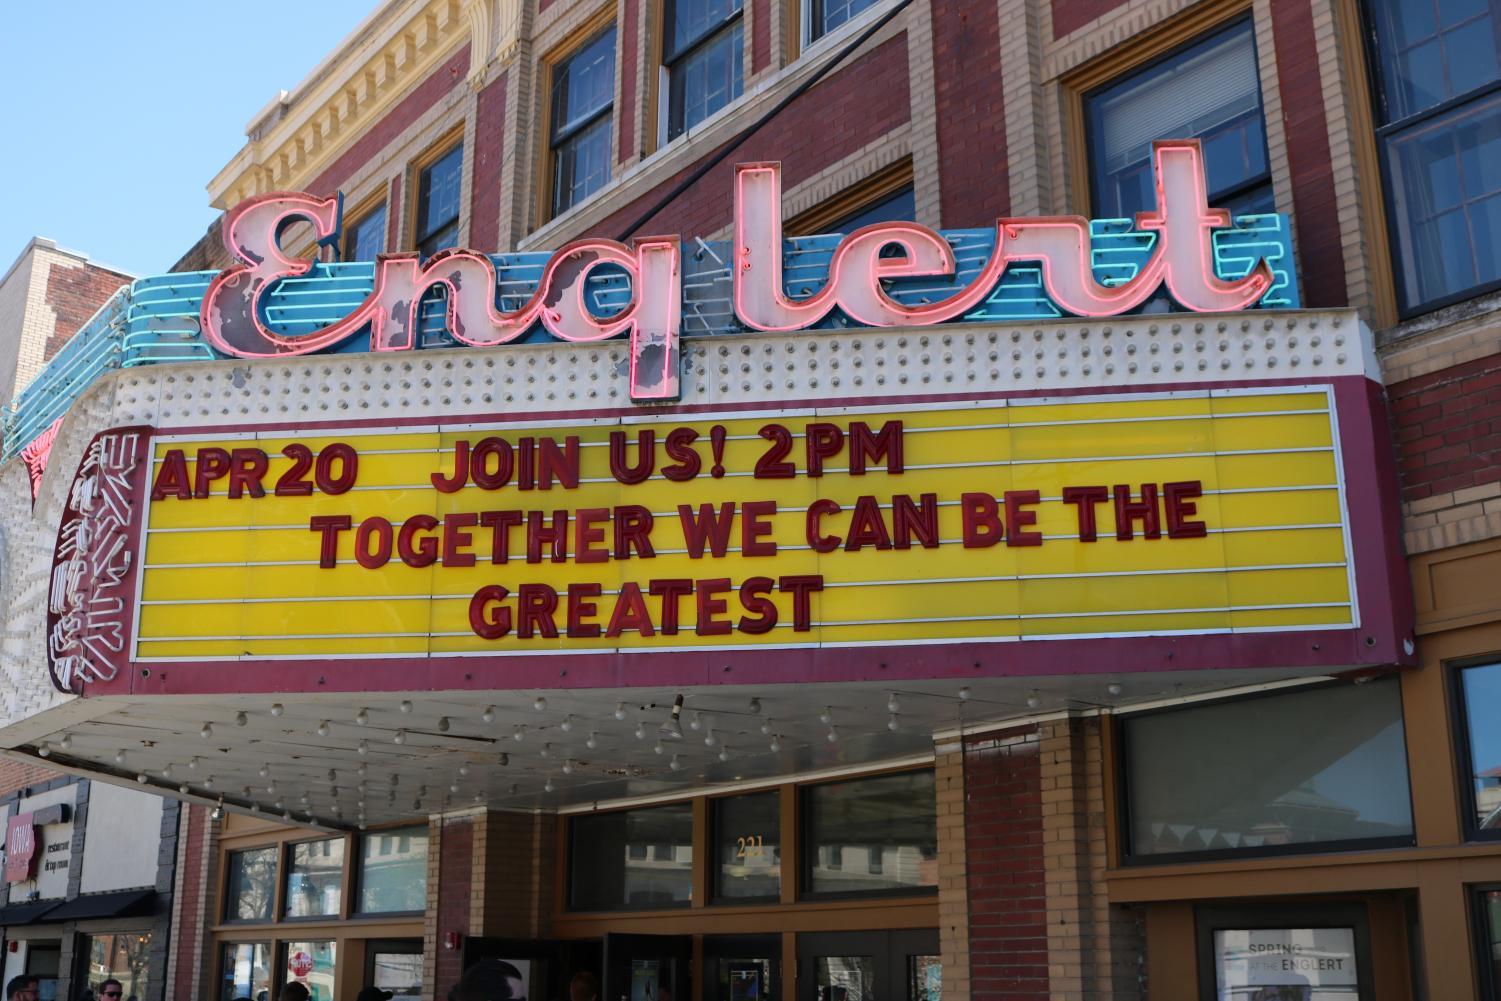 The Englert marquee on the day of the event.